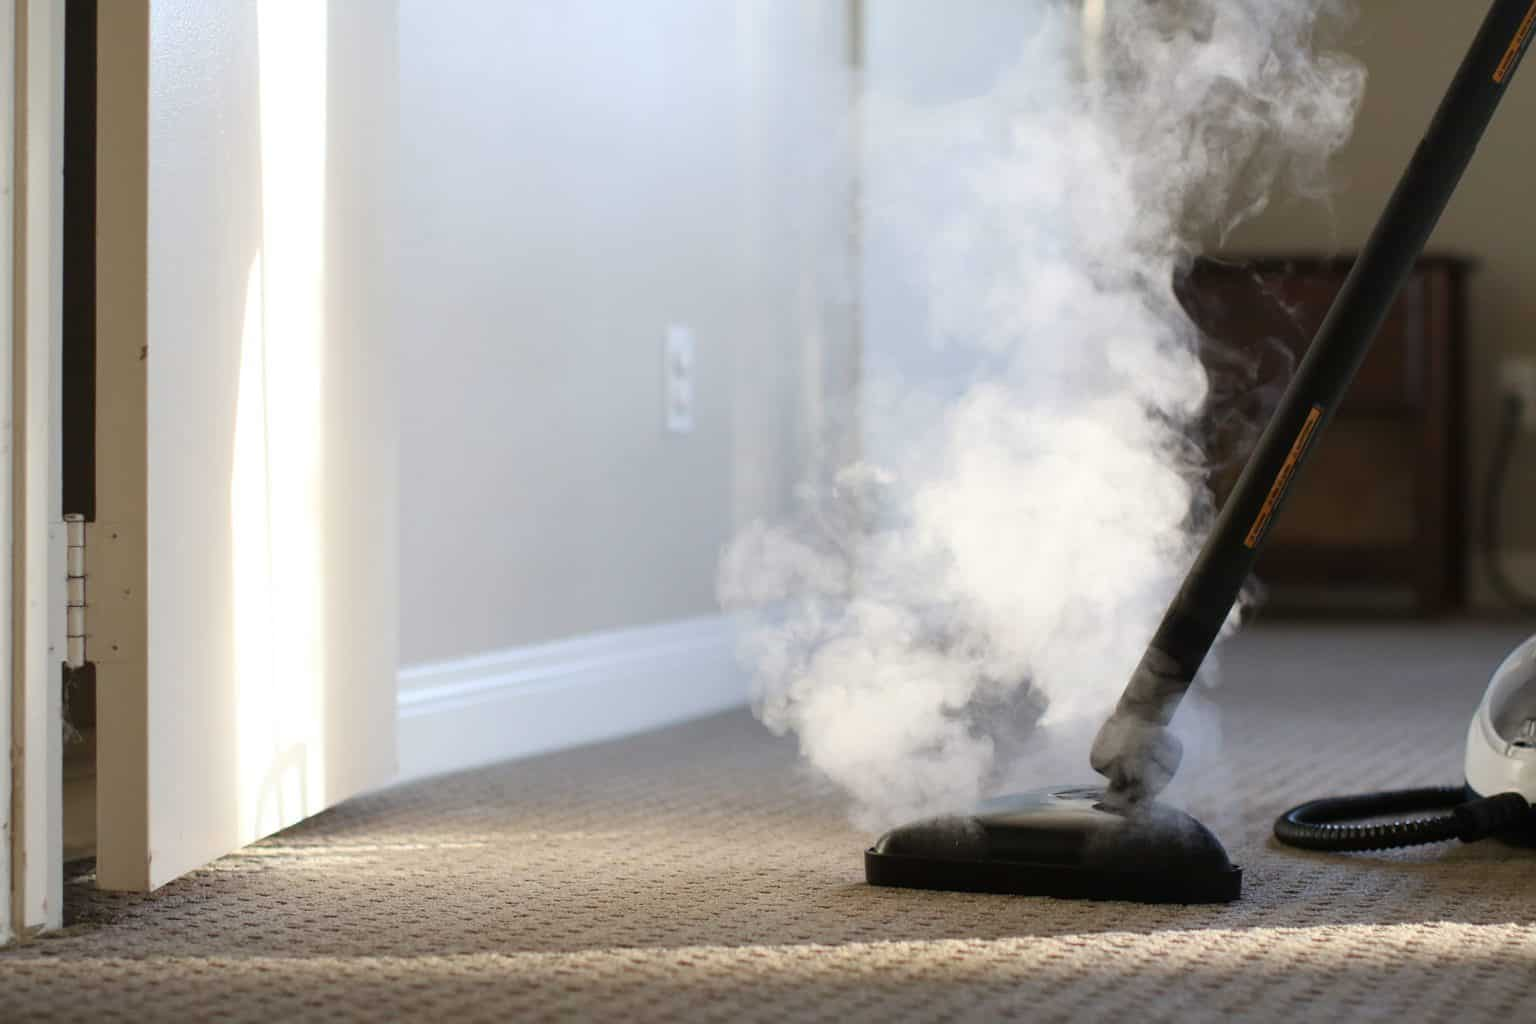 Commercial steam cleaner being used to clean the carpet